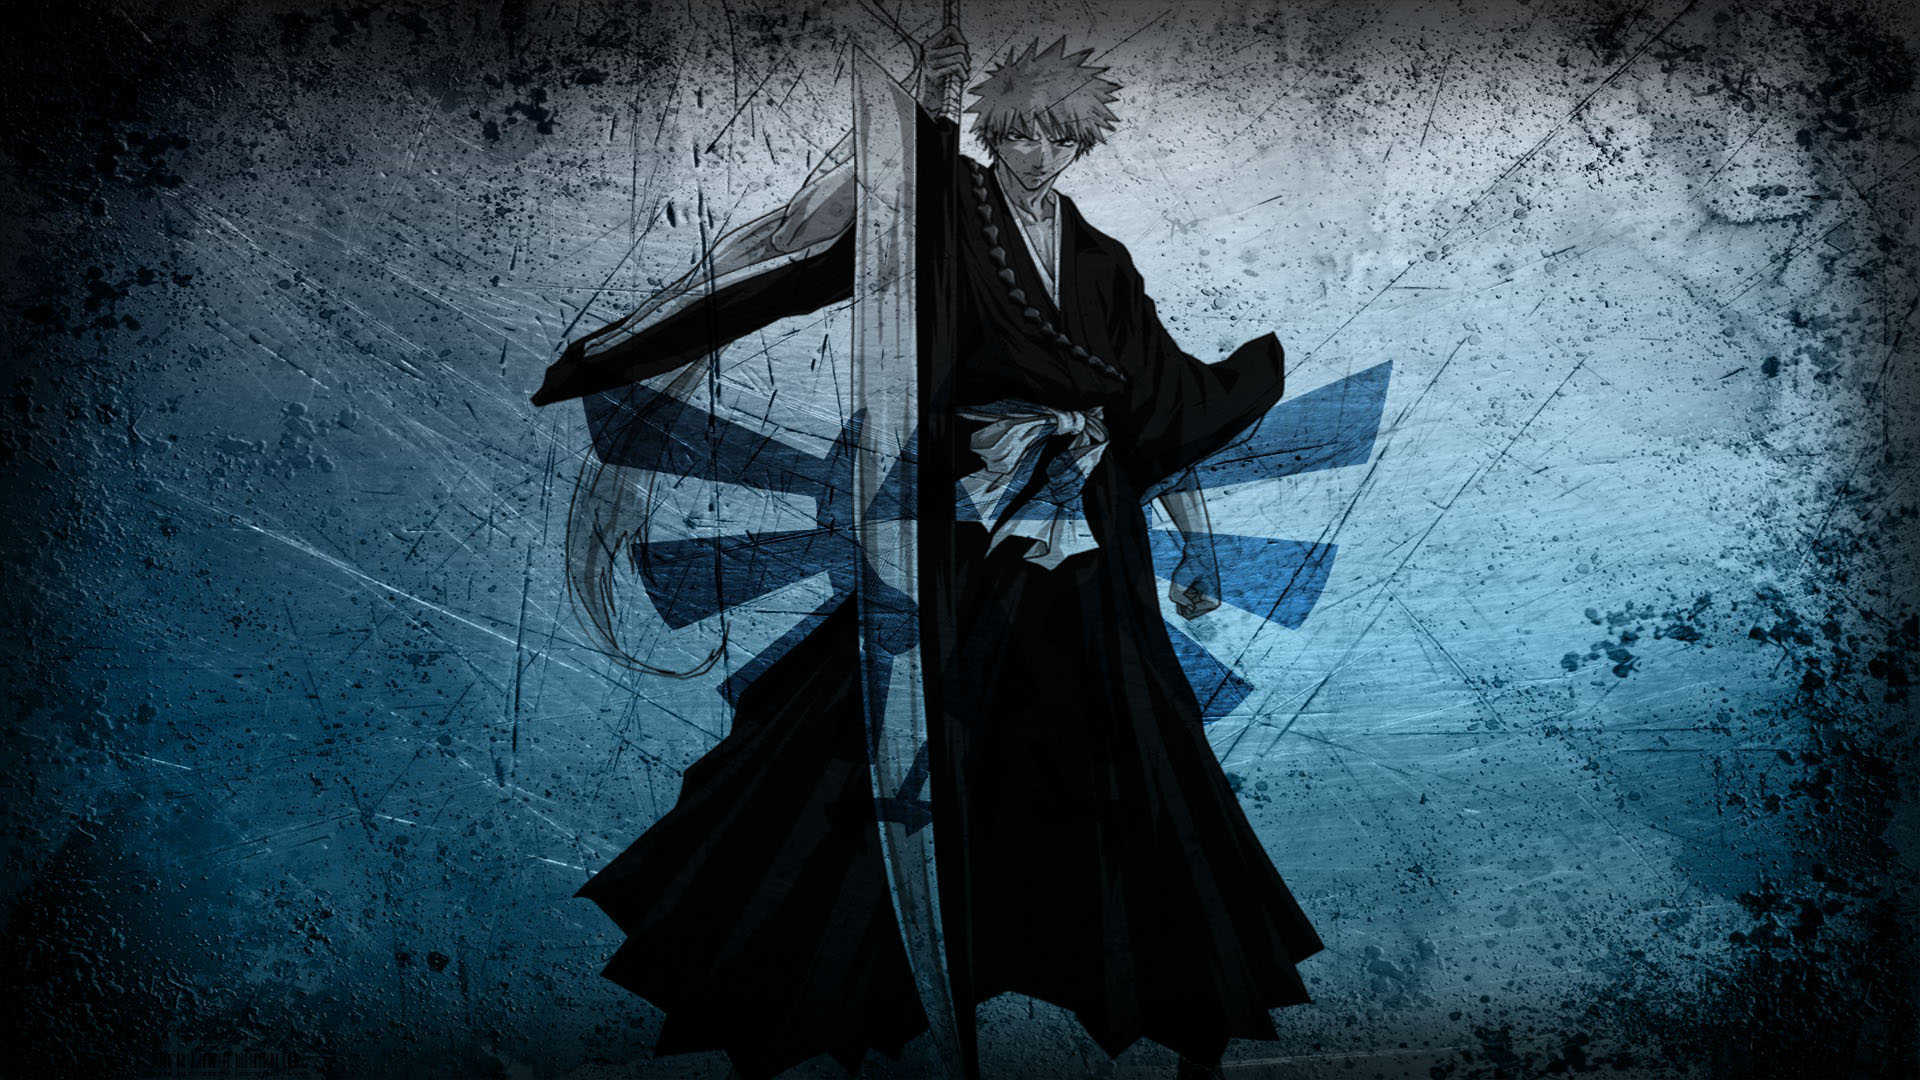 Bleach Hd Wallpaper And Image Hd Background